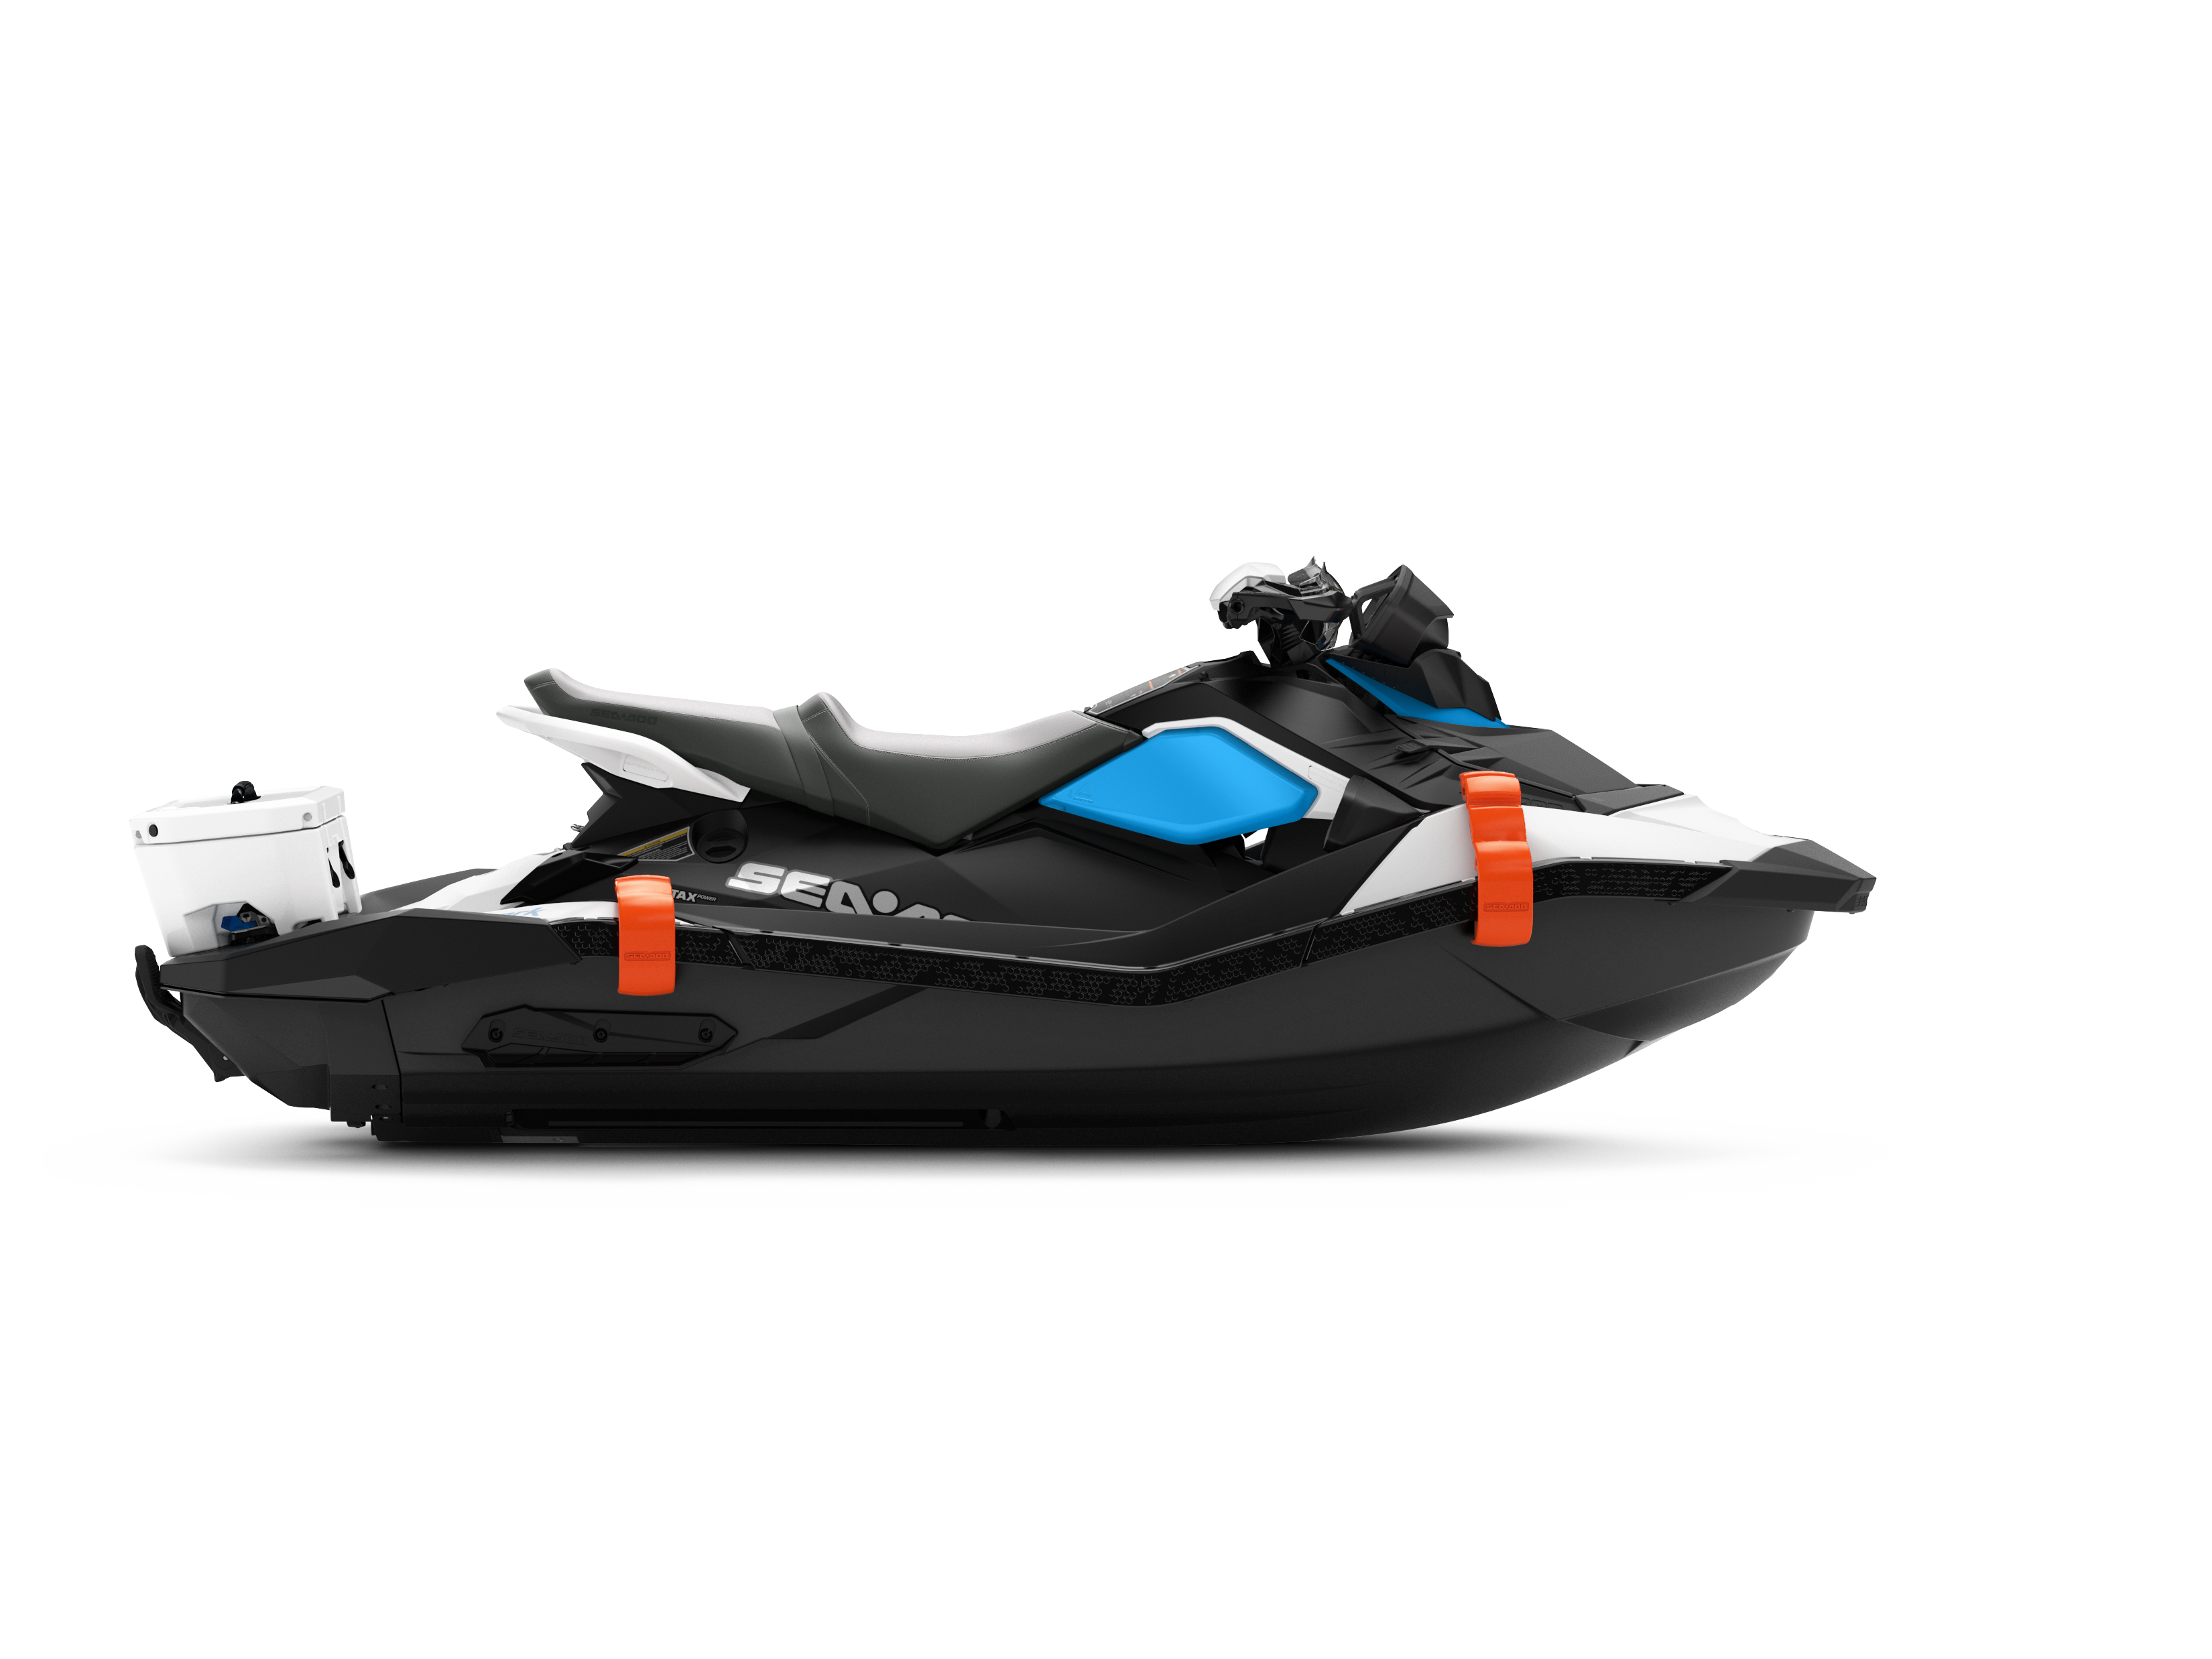 Sea-Doo SPARK | Affordable And Fun | Sea-Doo Watercraft